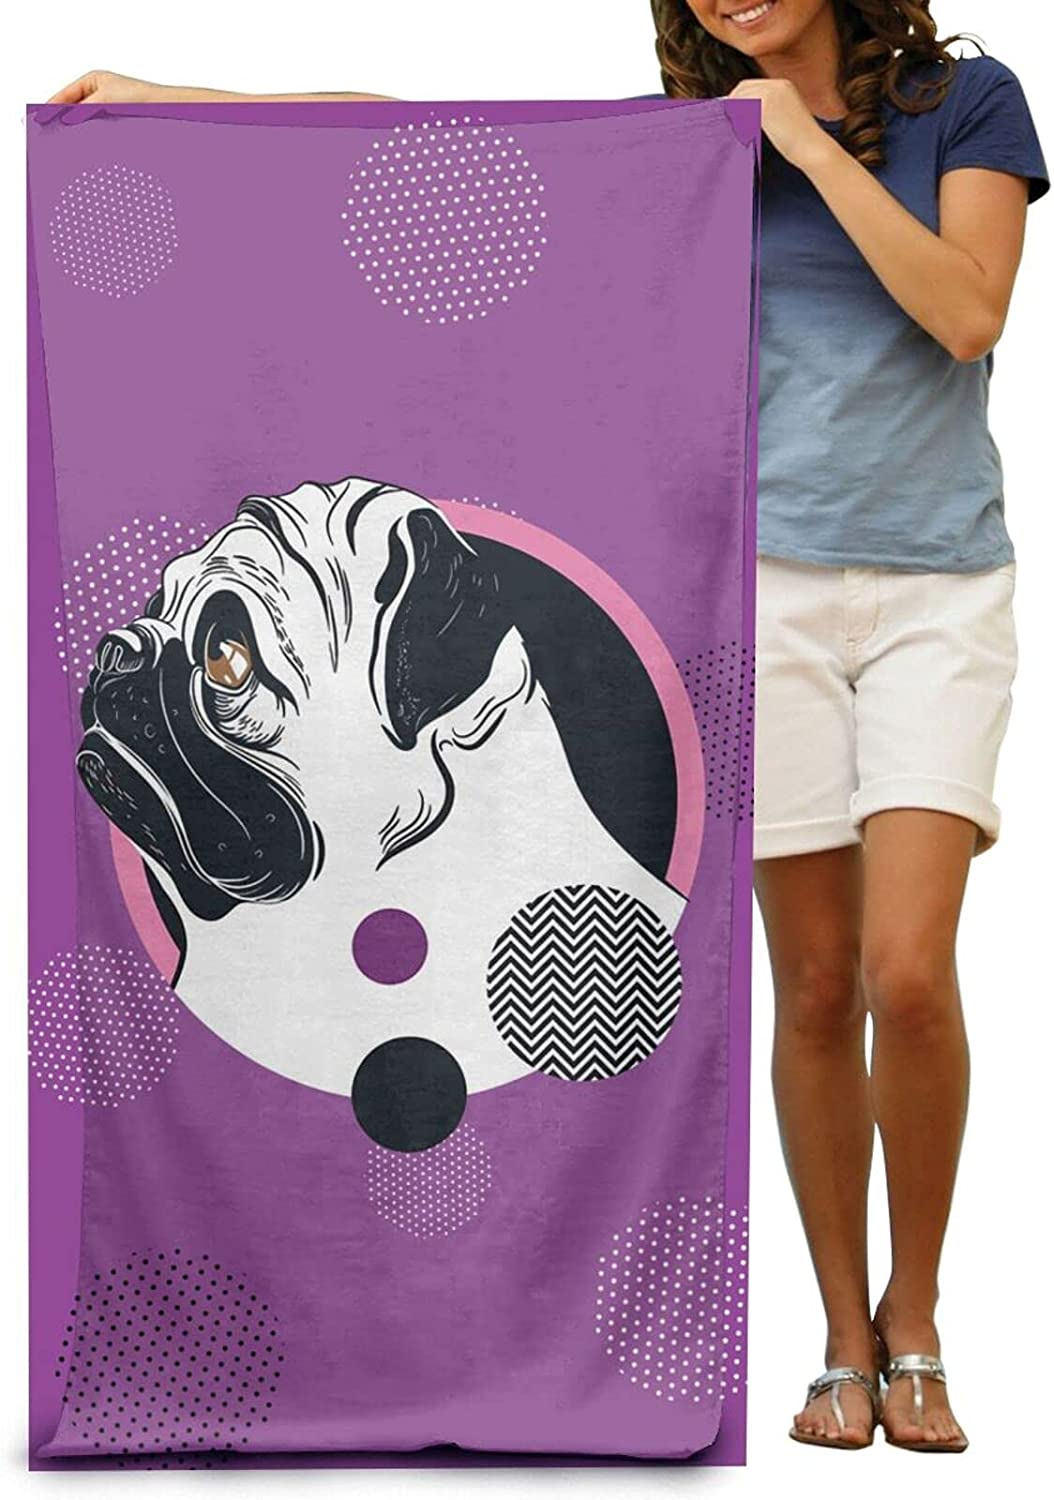 YAMADEI Super Soft Our shop OFFers the best service Luxury Bath Bulldog 55% OFF Absorb French Towel